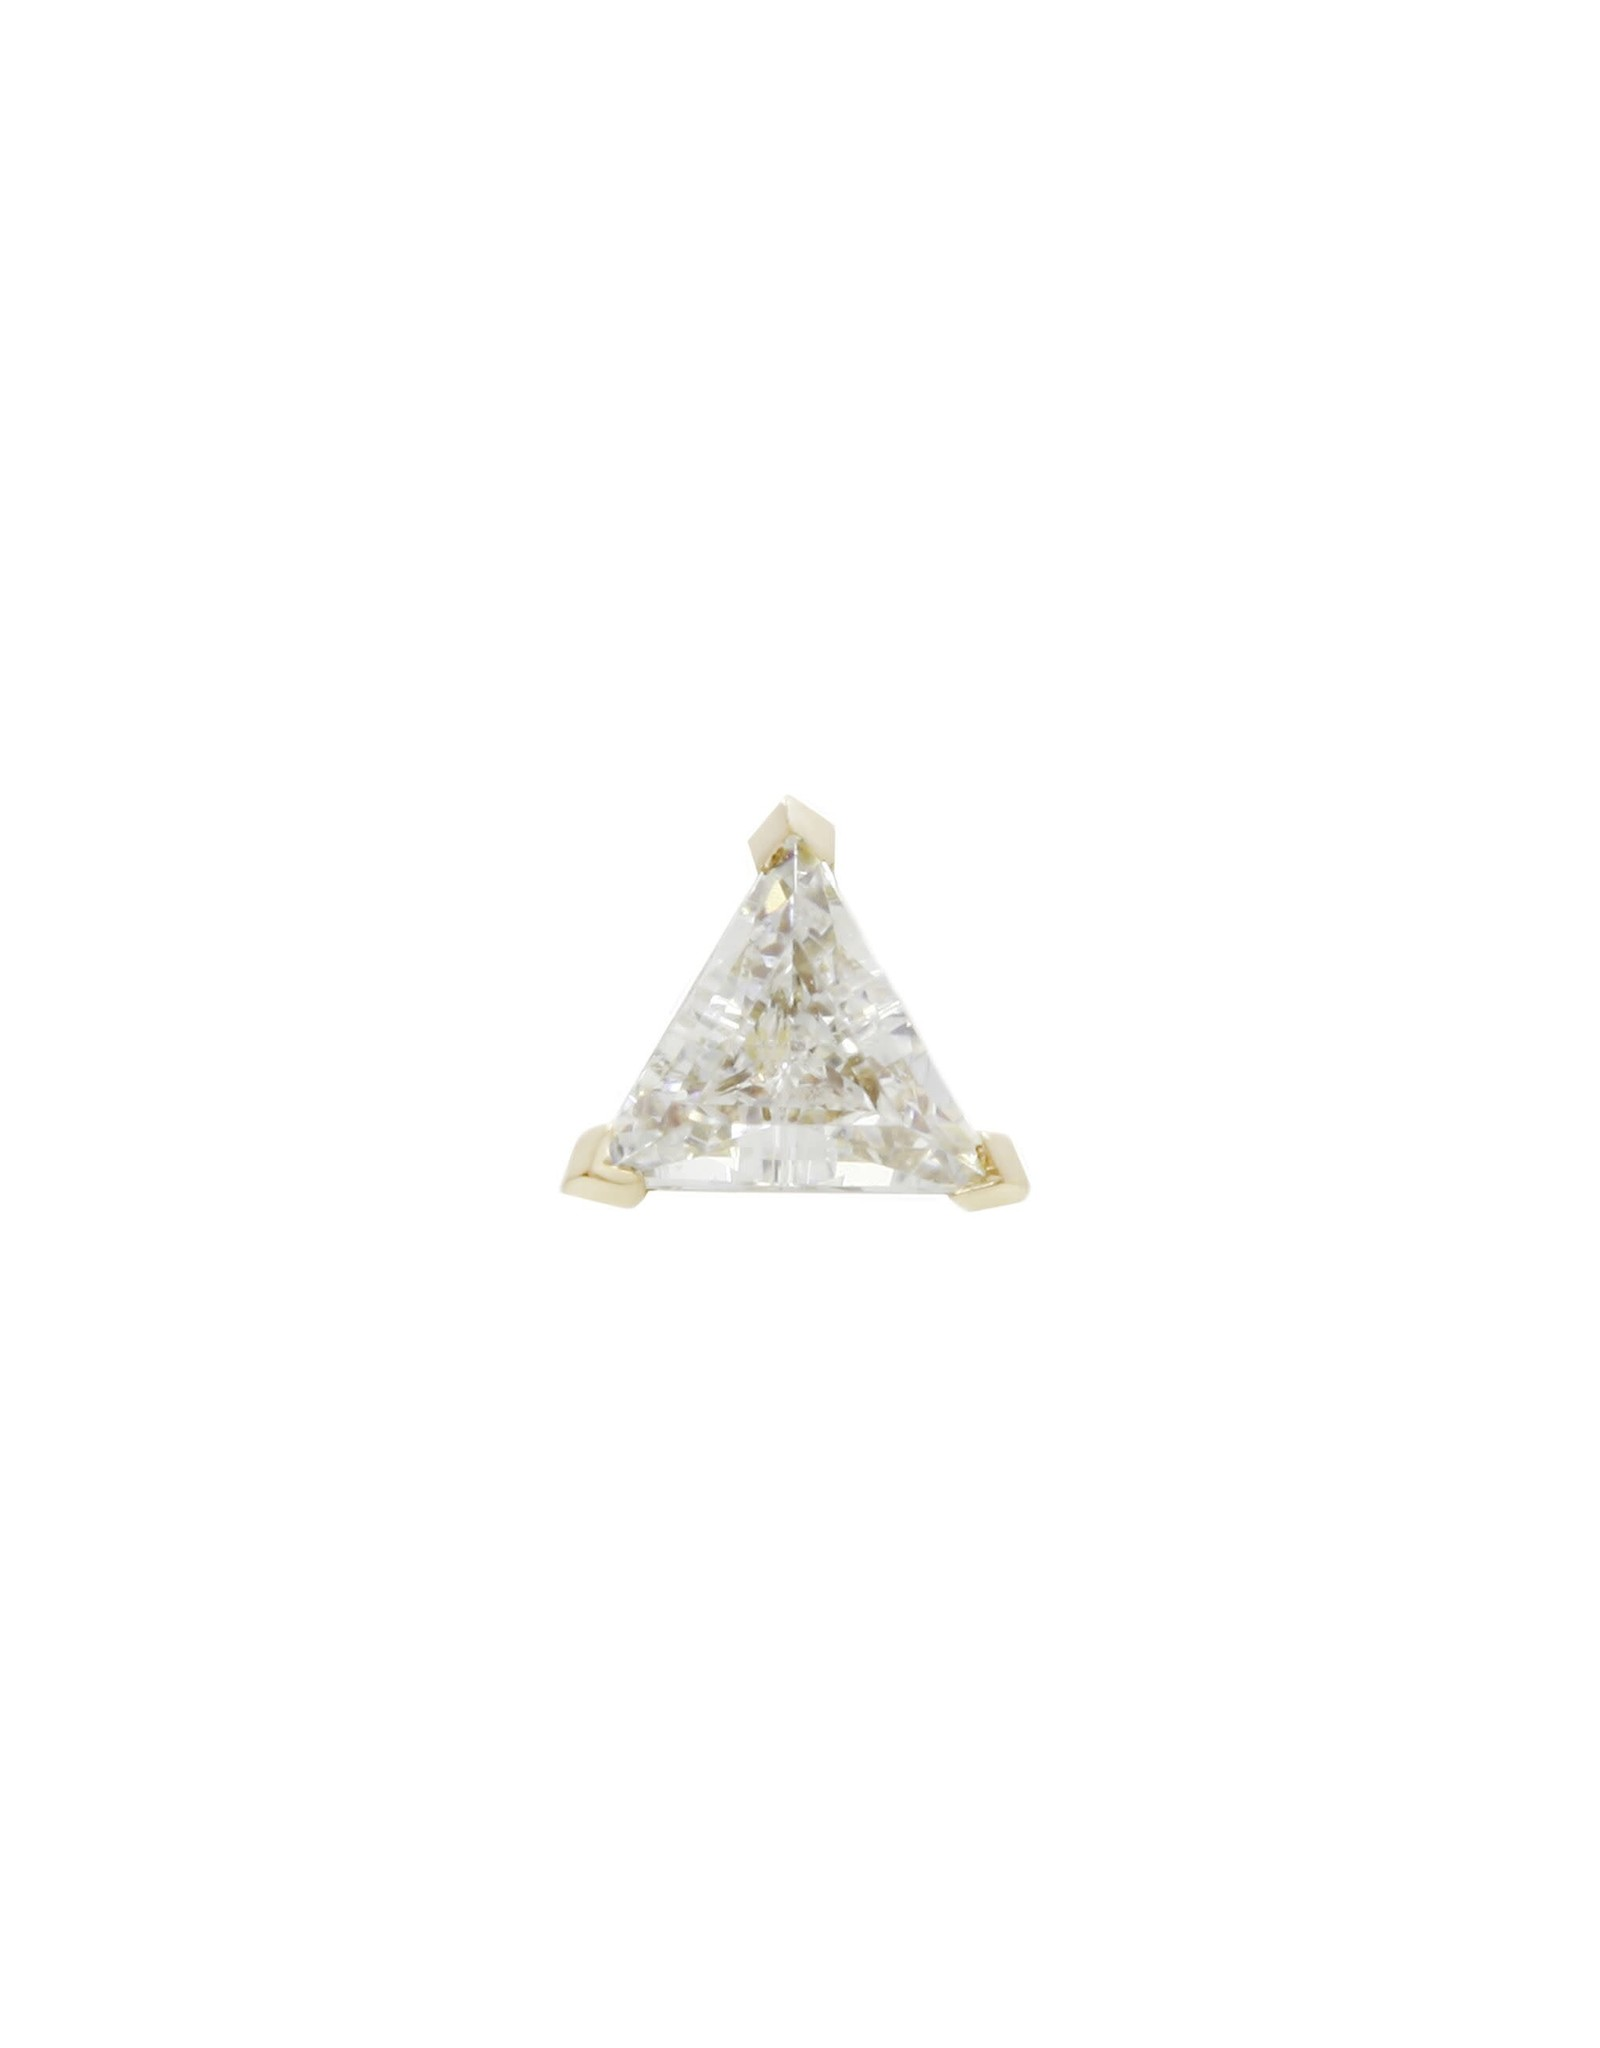 Buddha Jewelry Organics Buddha Jewelry Organic gold prong set trillion CZ press fit end.